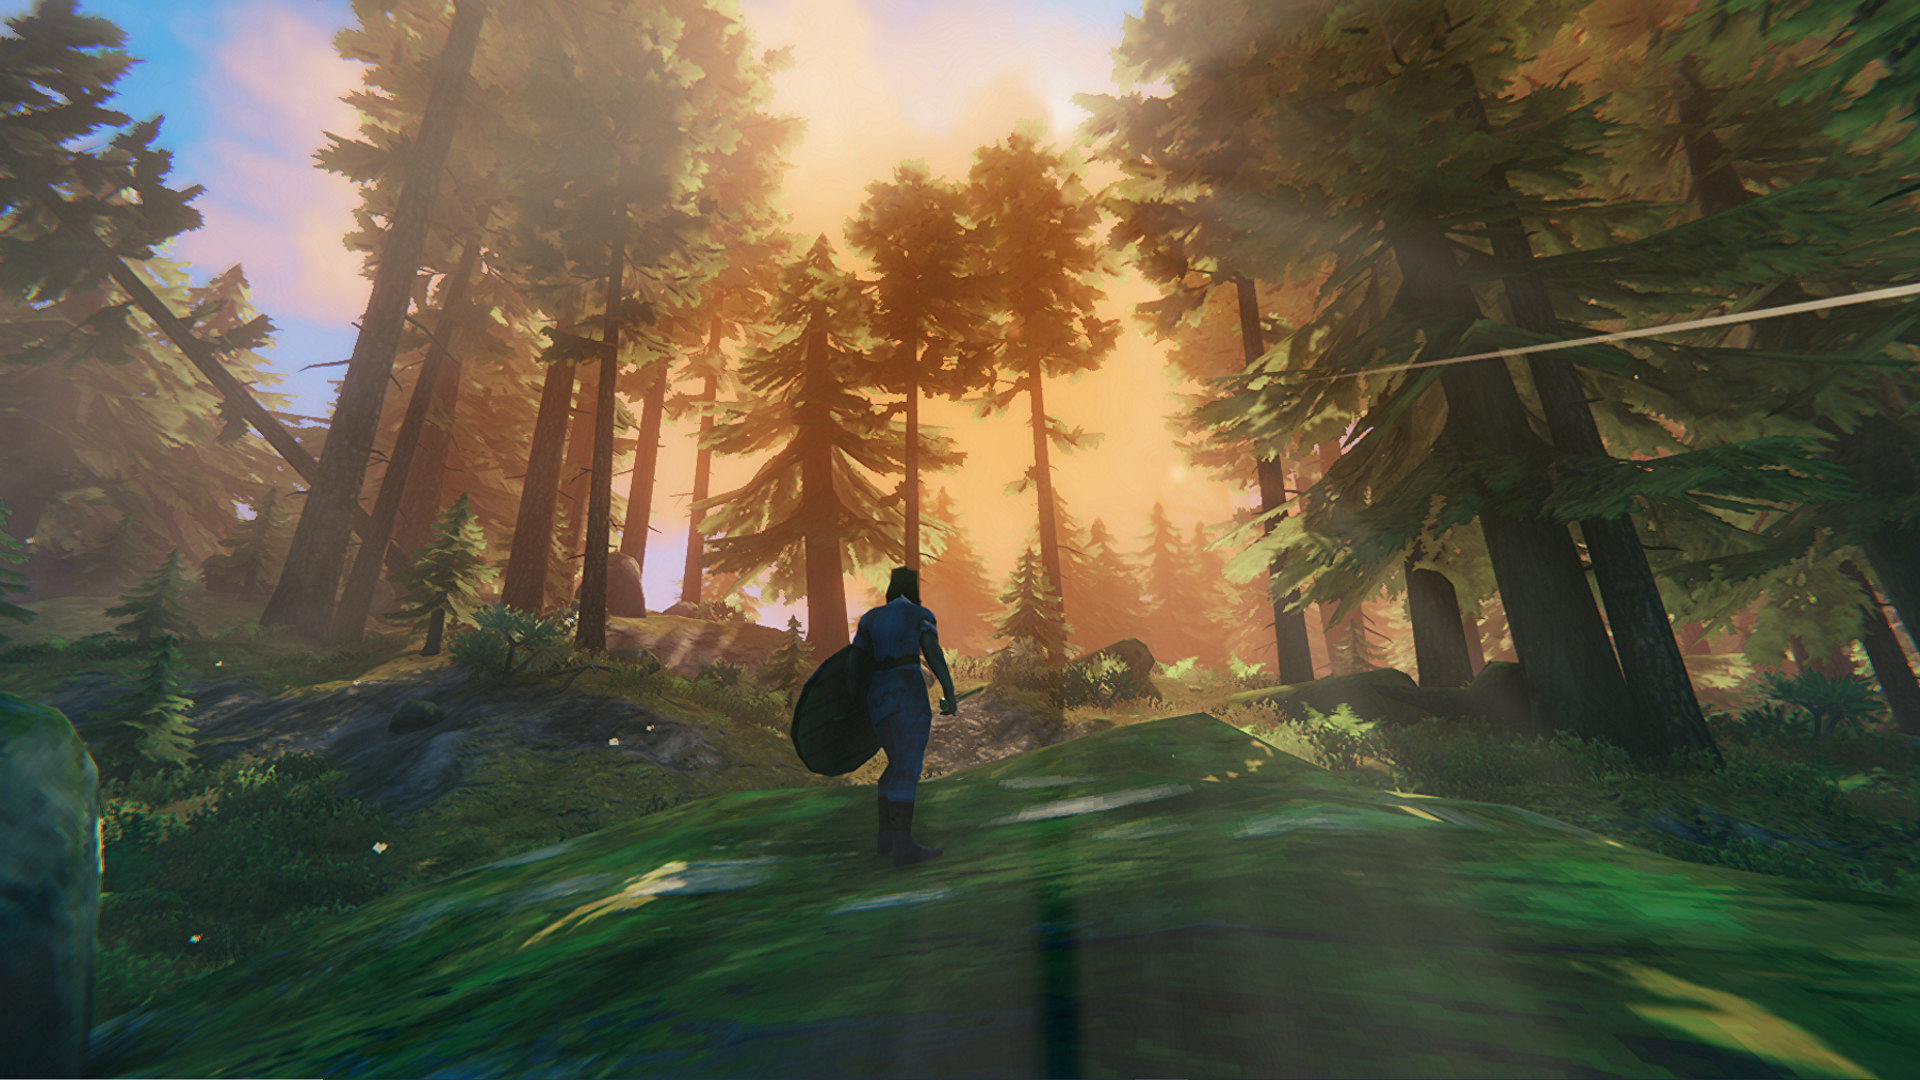 Valheim is more inspired by The Legend Of Zelda than it is survival games, says developer